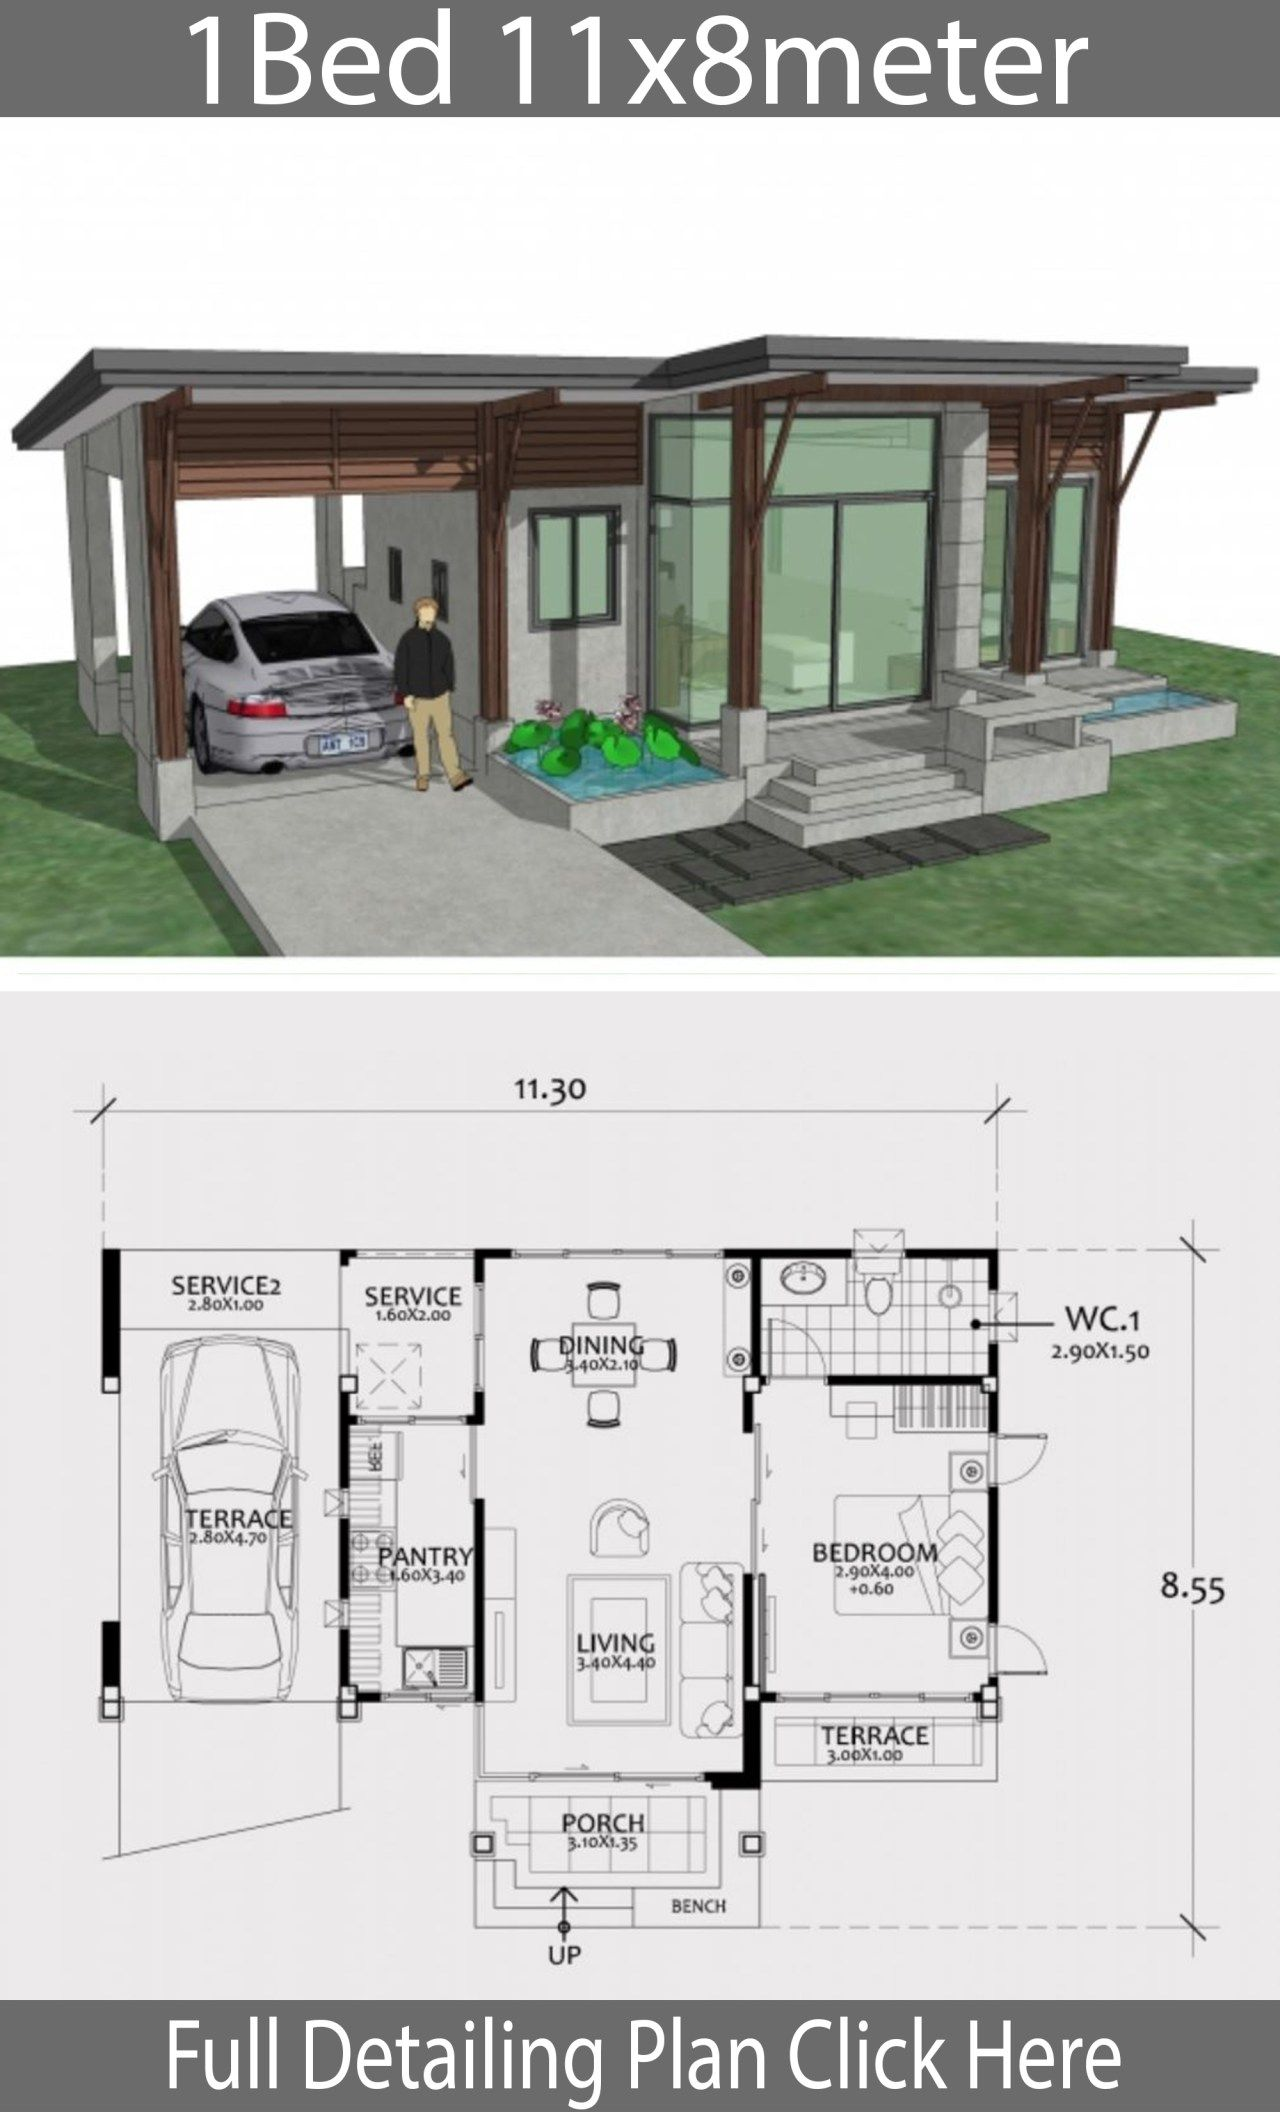 Home Design Plan 11x8m With One Bedroom Home Design Plan House Design Small House Design